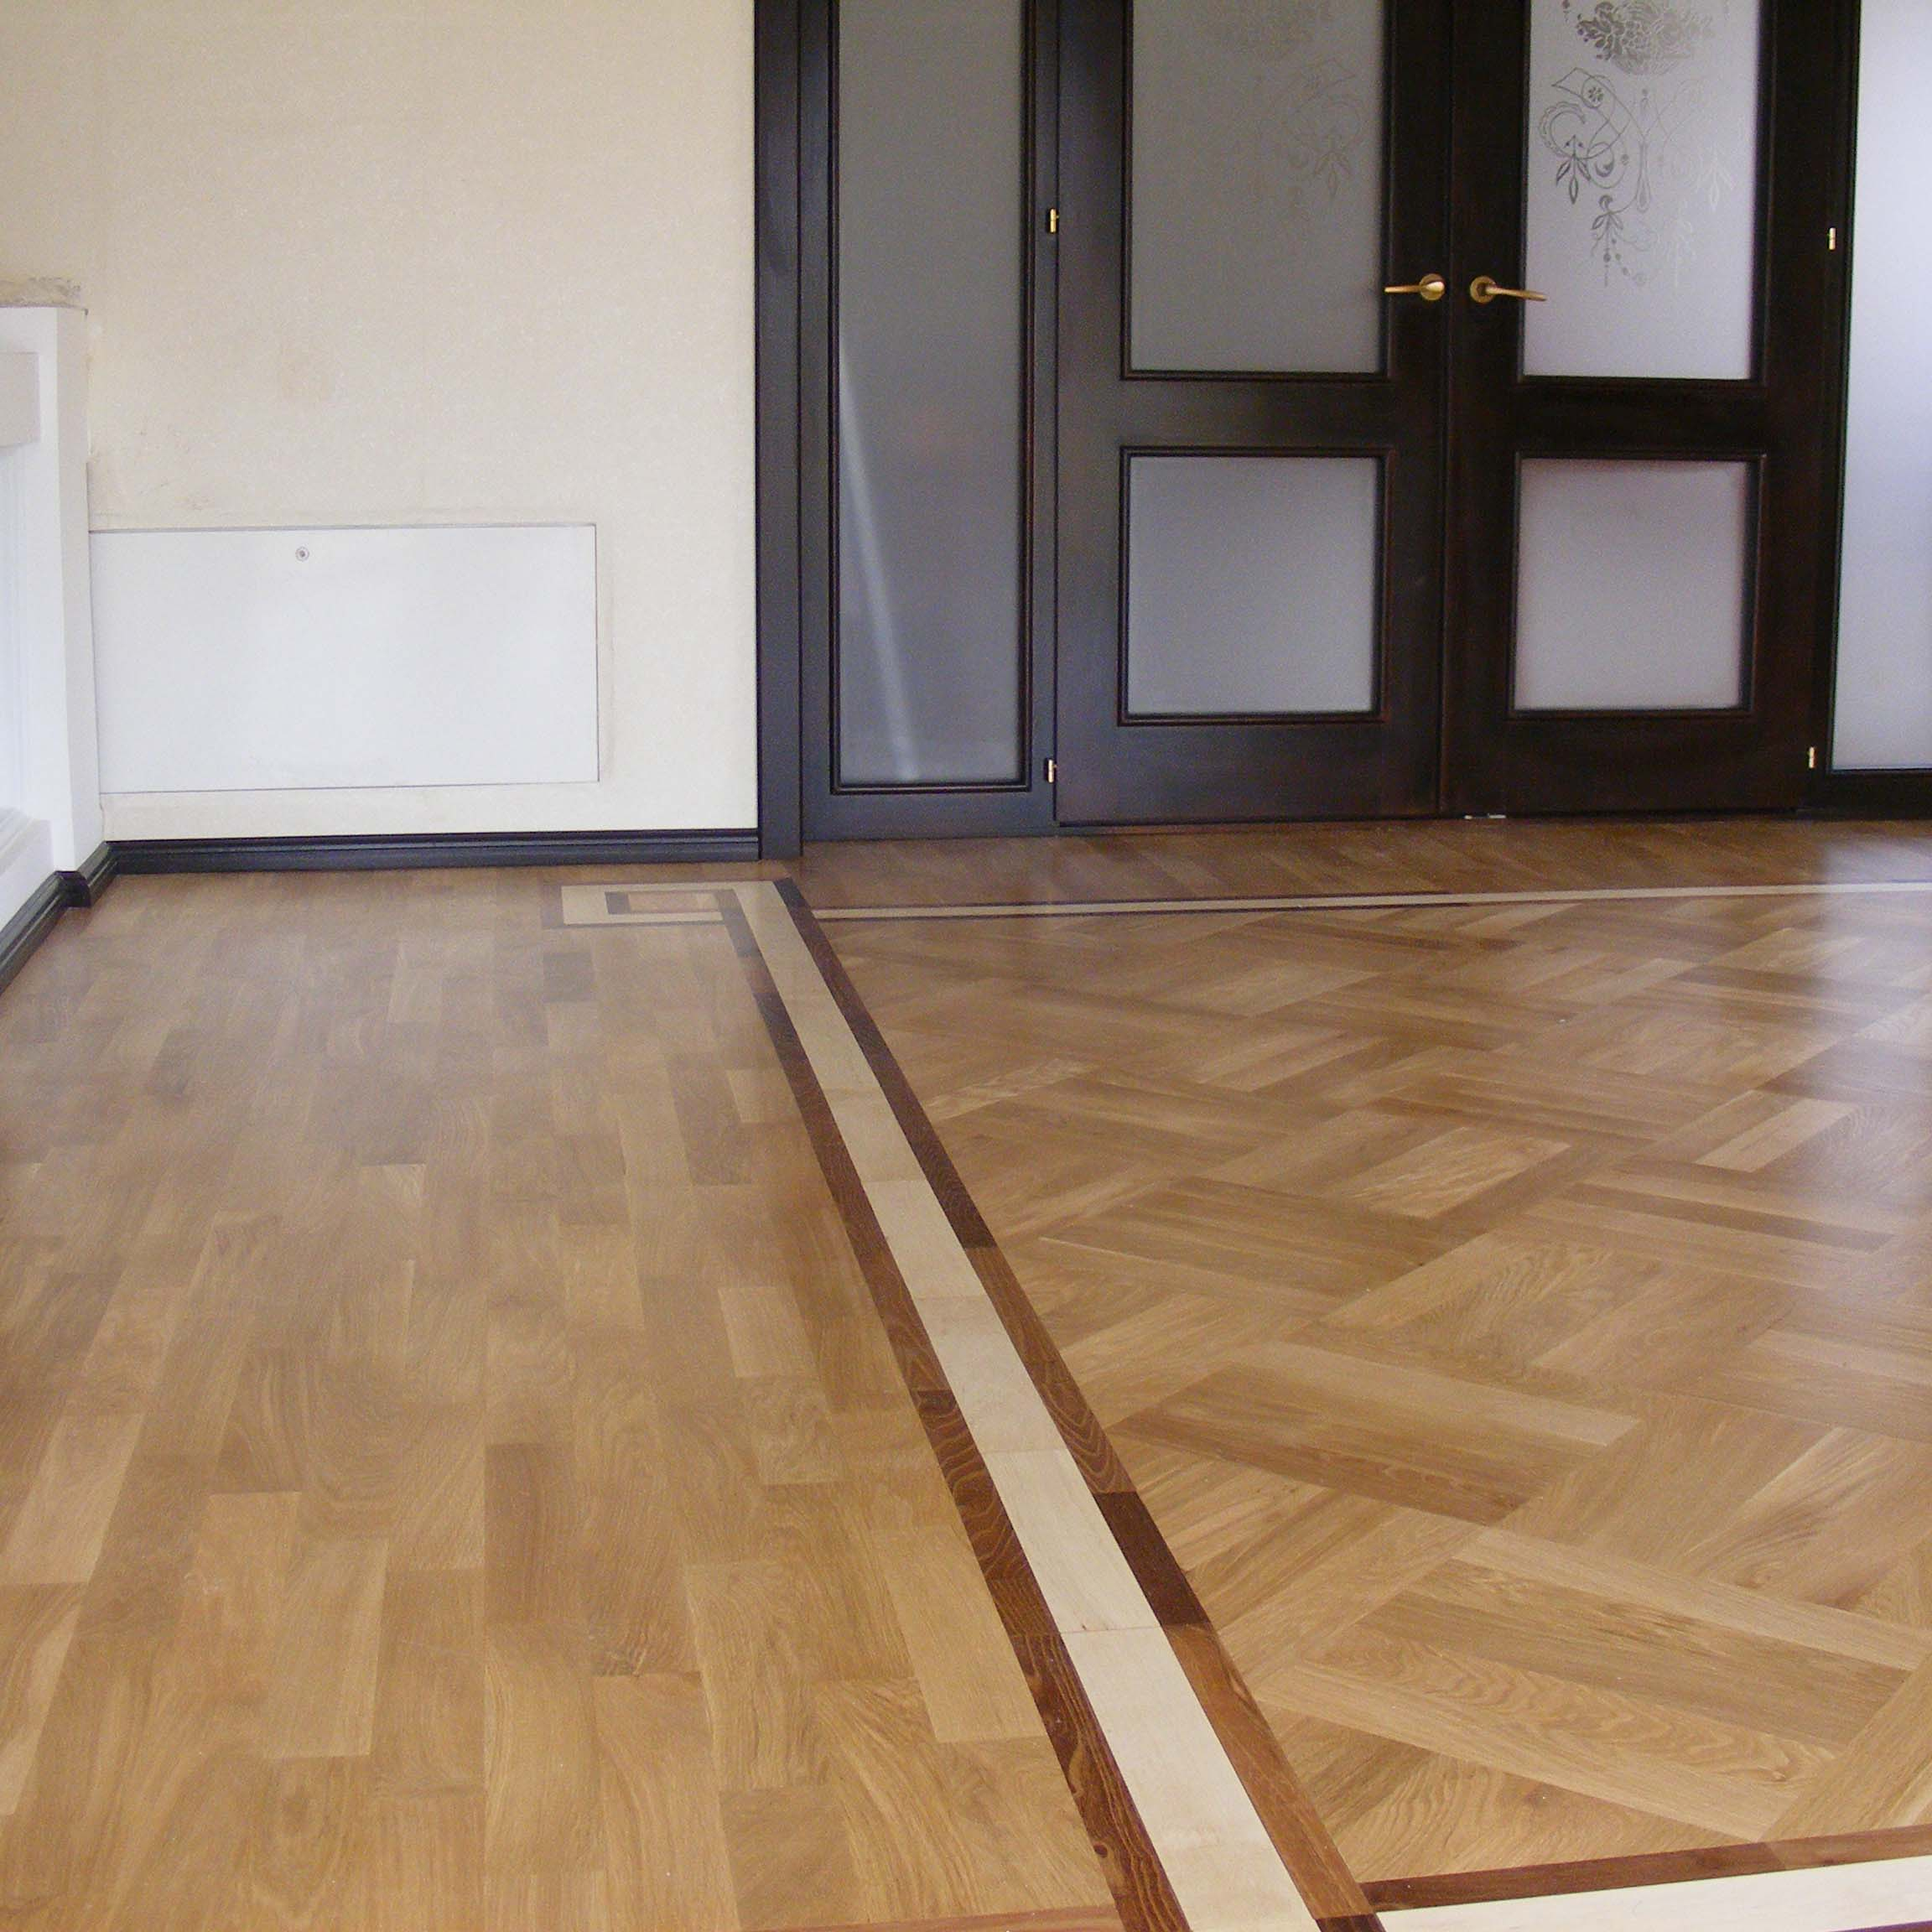 2.Laquered Solid Oak Parquet 20mm